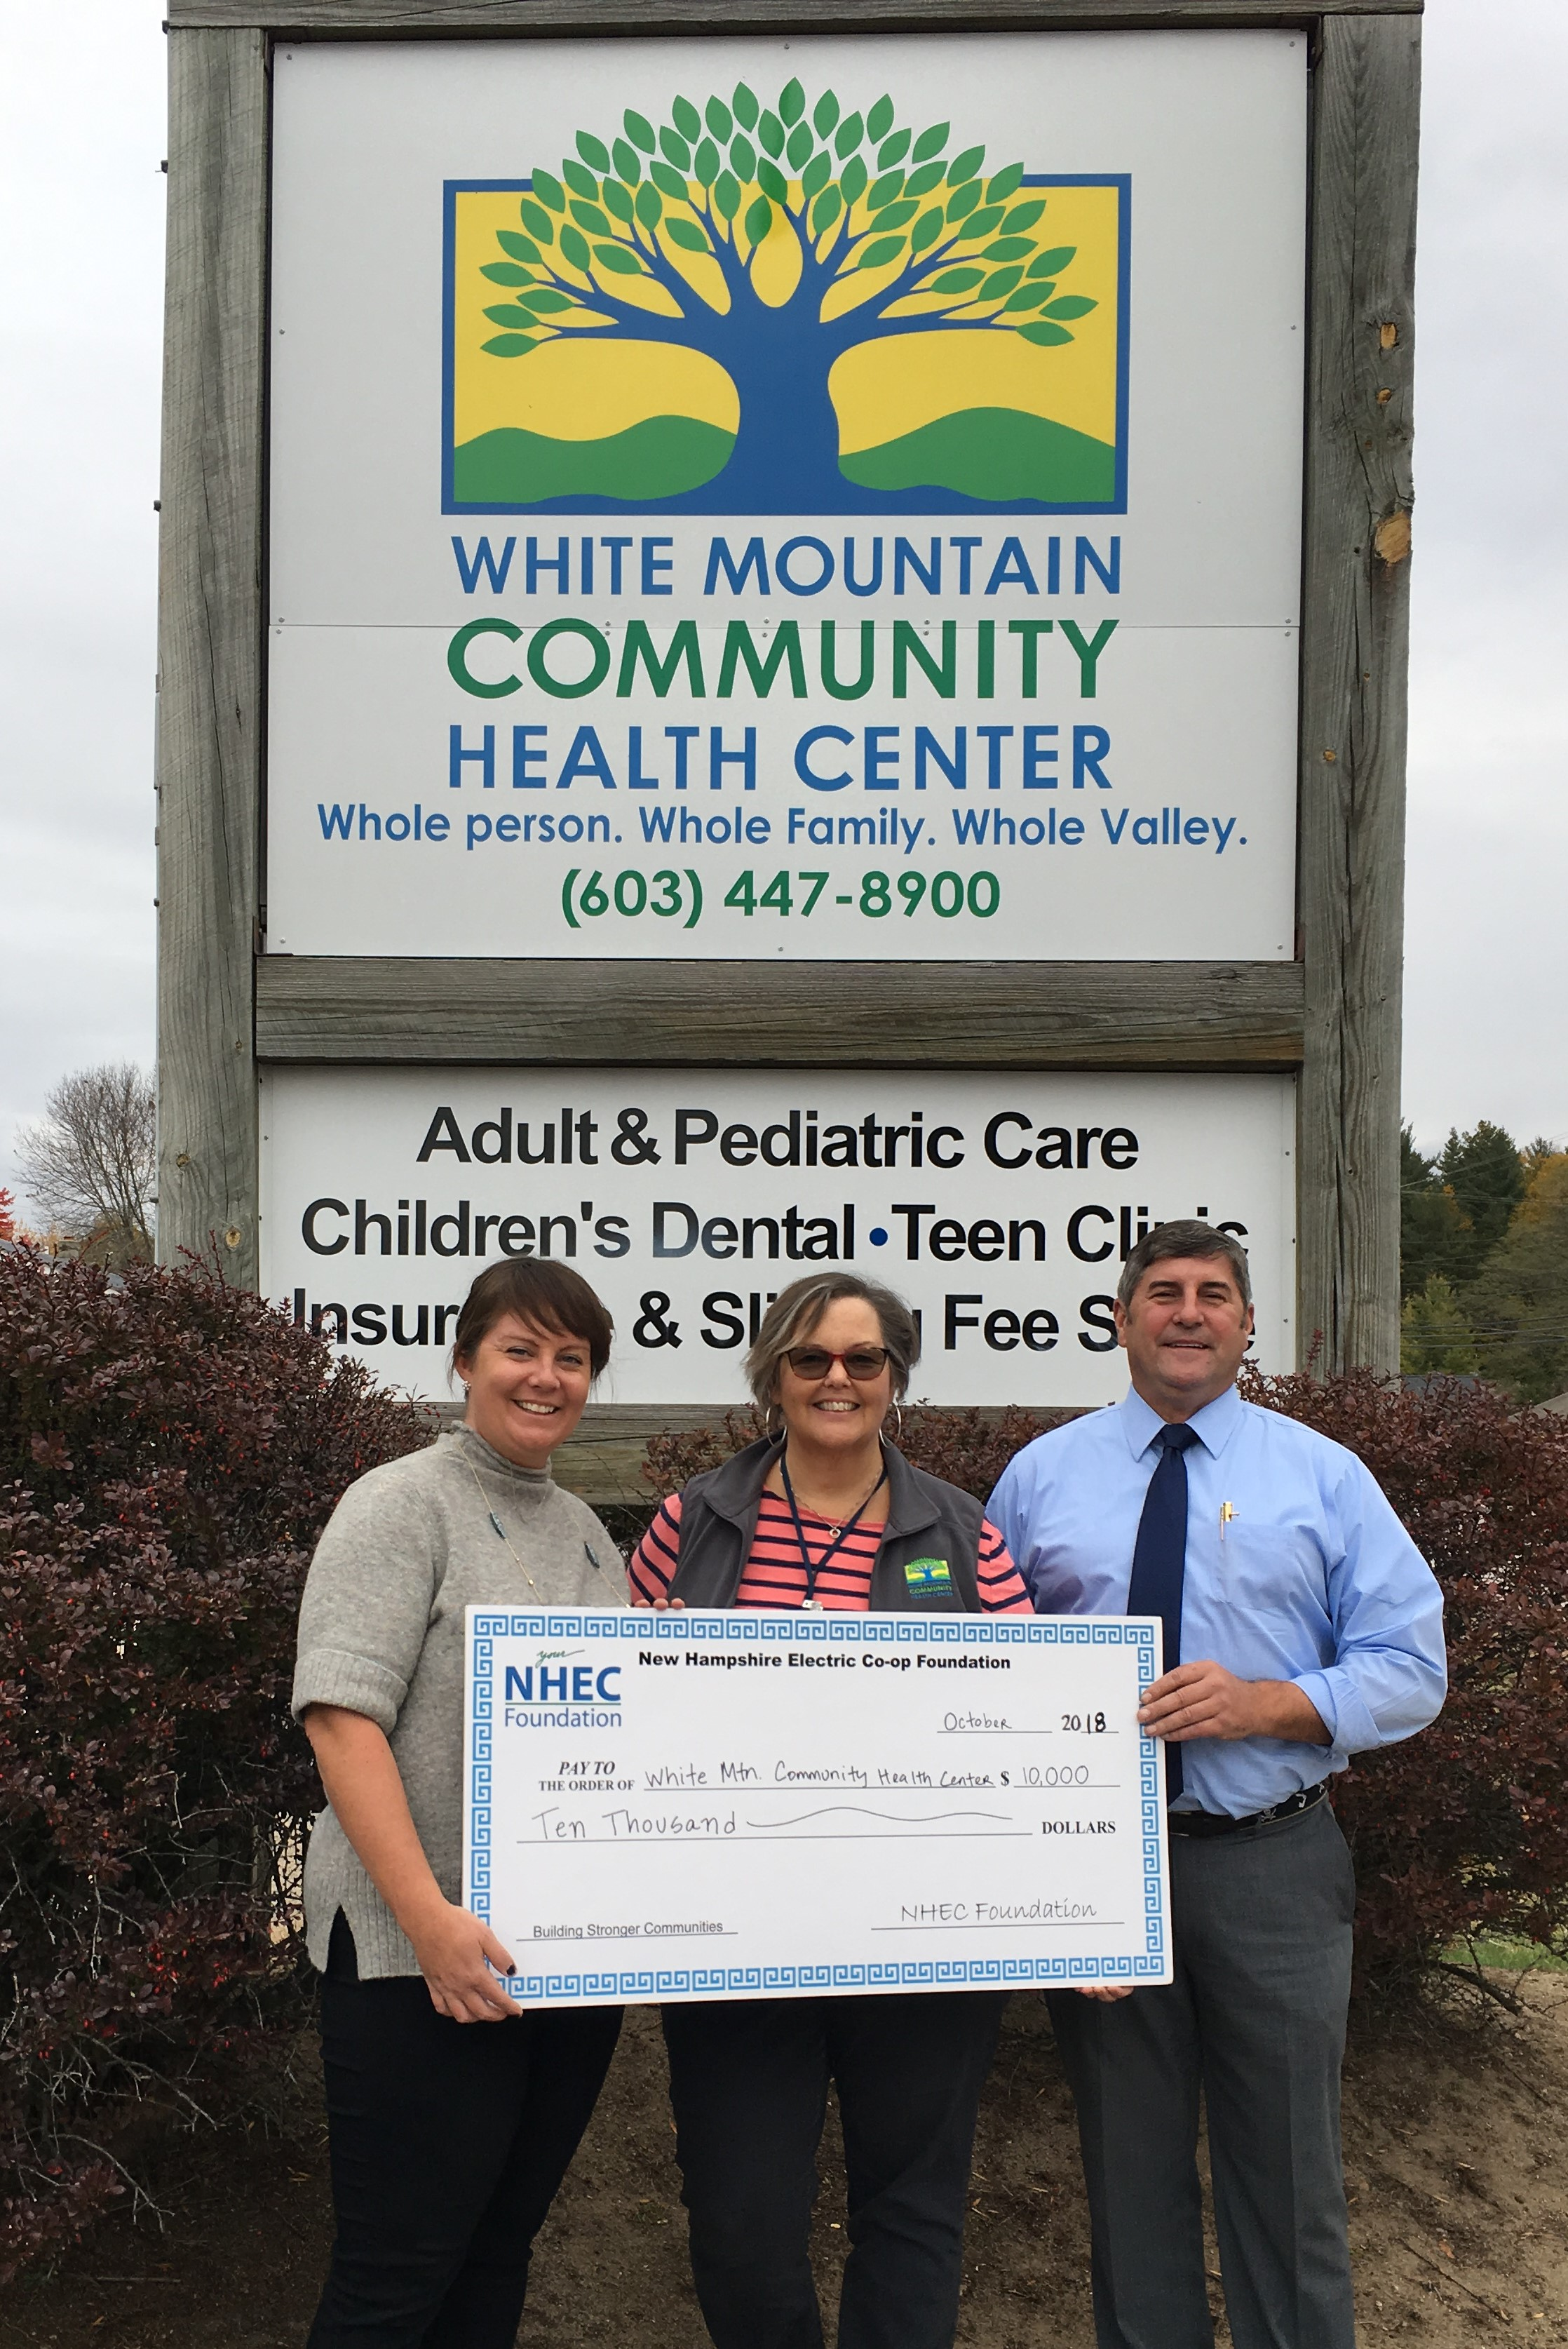 The Latest White Mountain Community Health Affordable Health